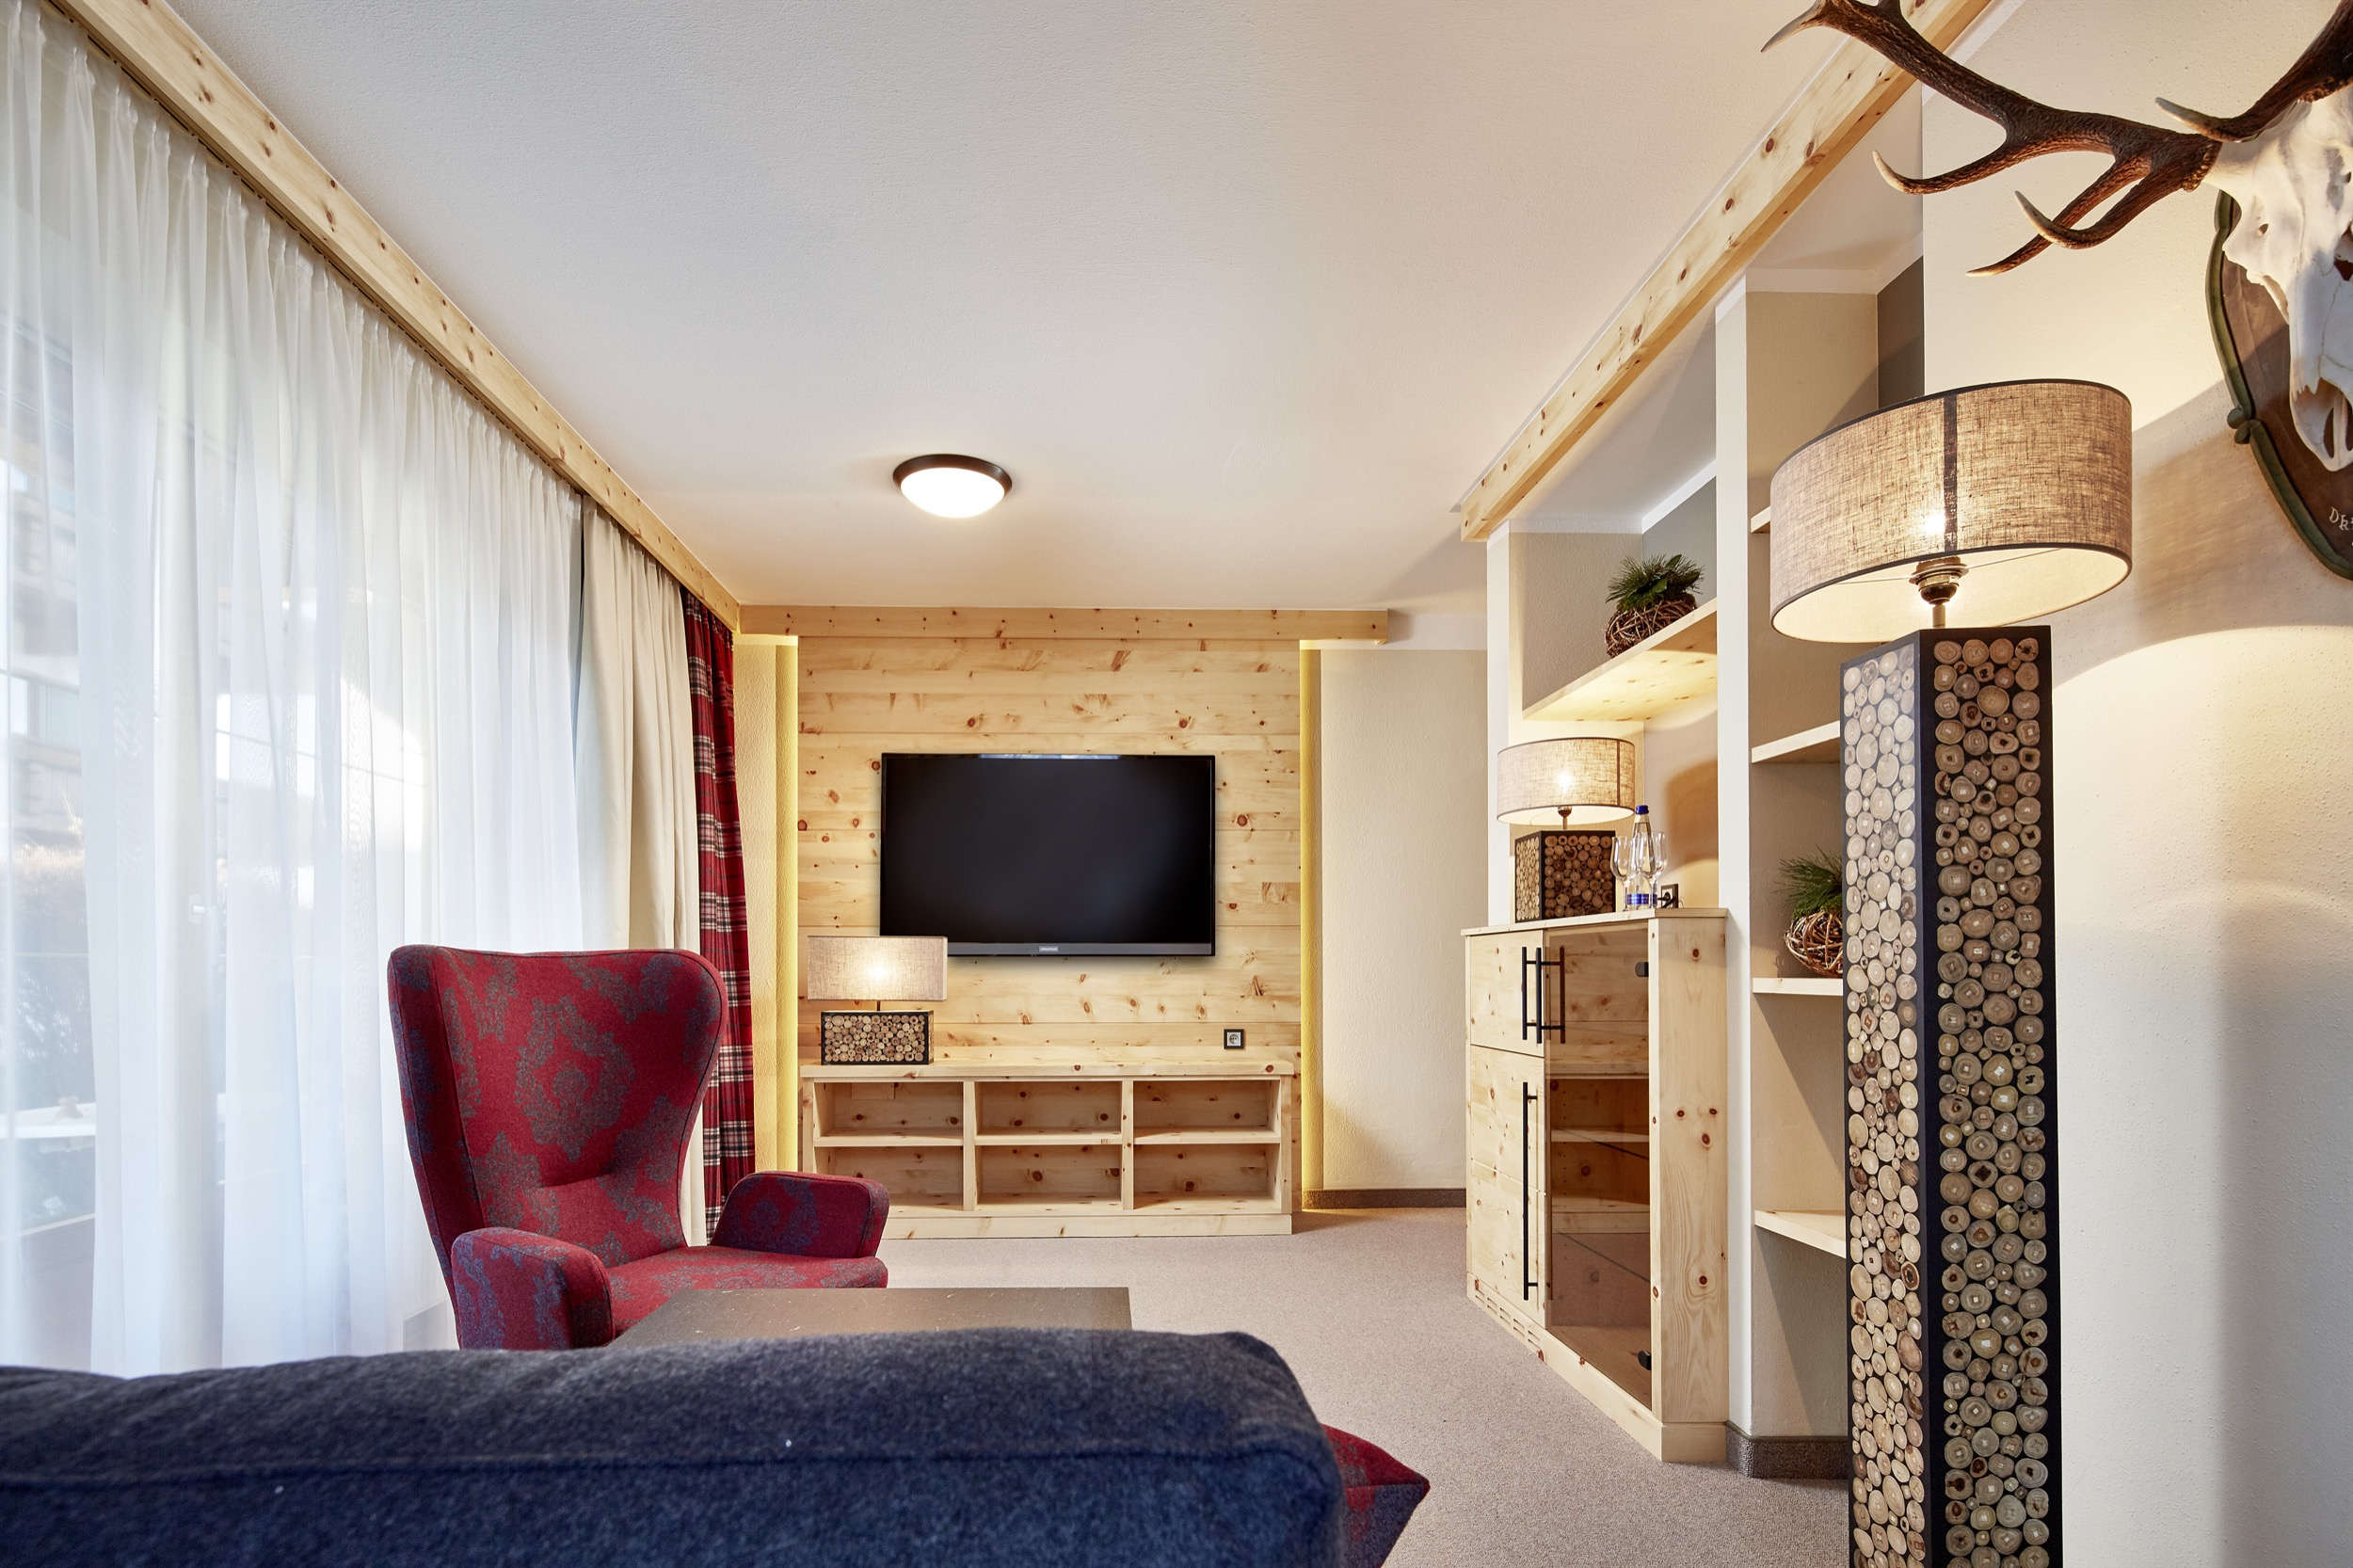 chalet firstberg hotel k nig ludwig schwangau. Black Bedroom Furniture Sets. Home Design Ideas